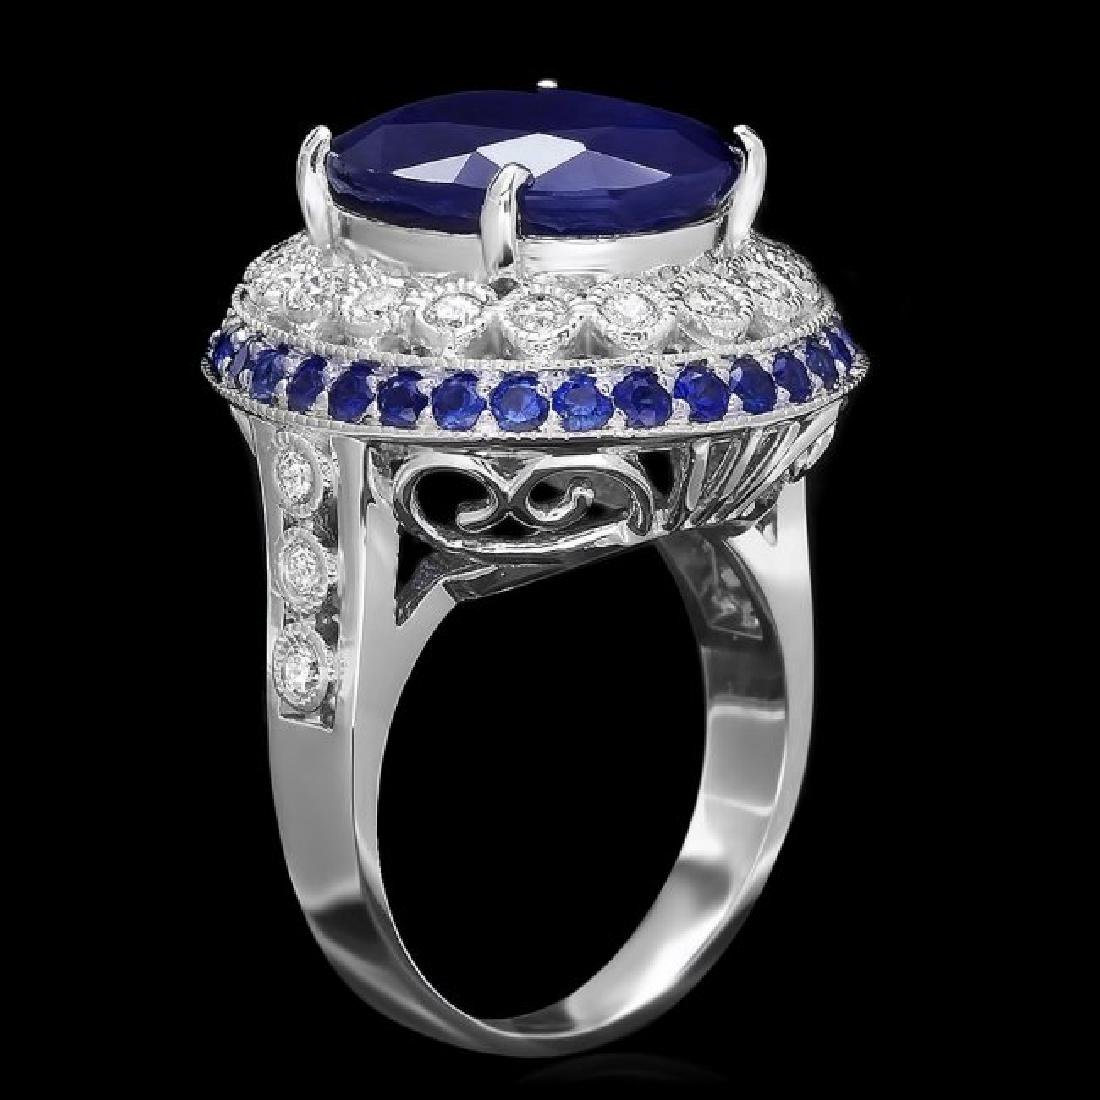 14k Gold 11.2ct Sapphire 0.60ct Diamond Ring